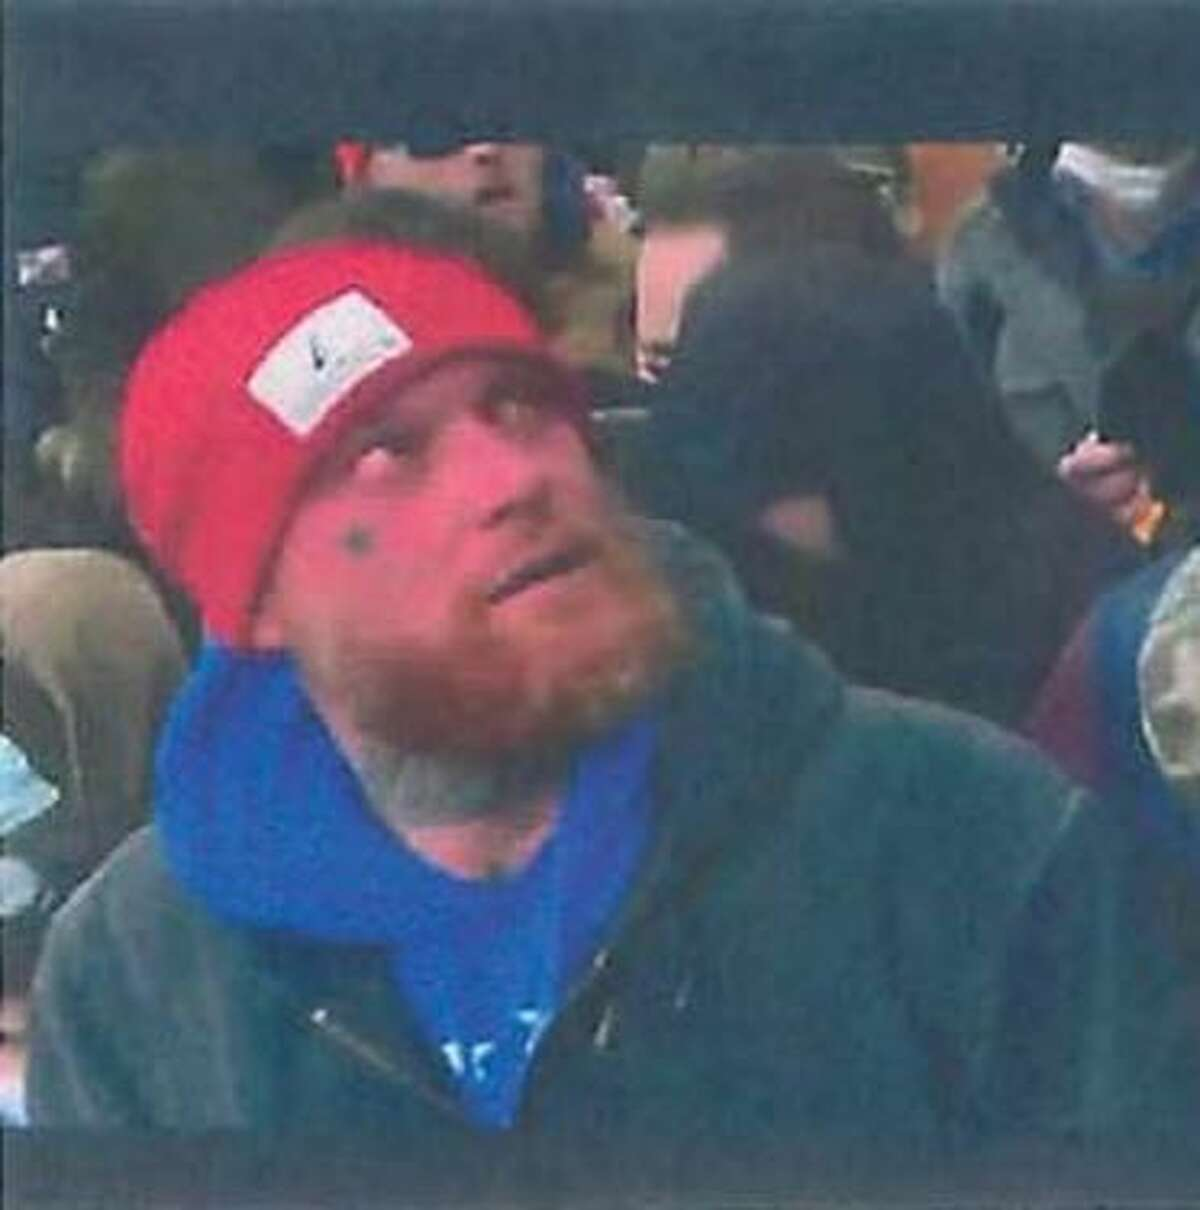 Houston man Shane Jenkins at the U.S. Capitol invasion on Jan. 6, according to federal court documents.